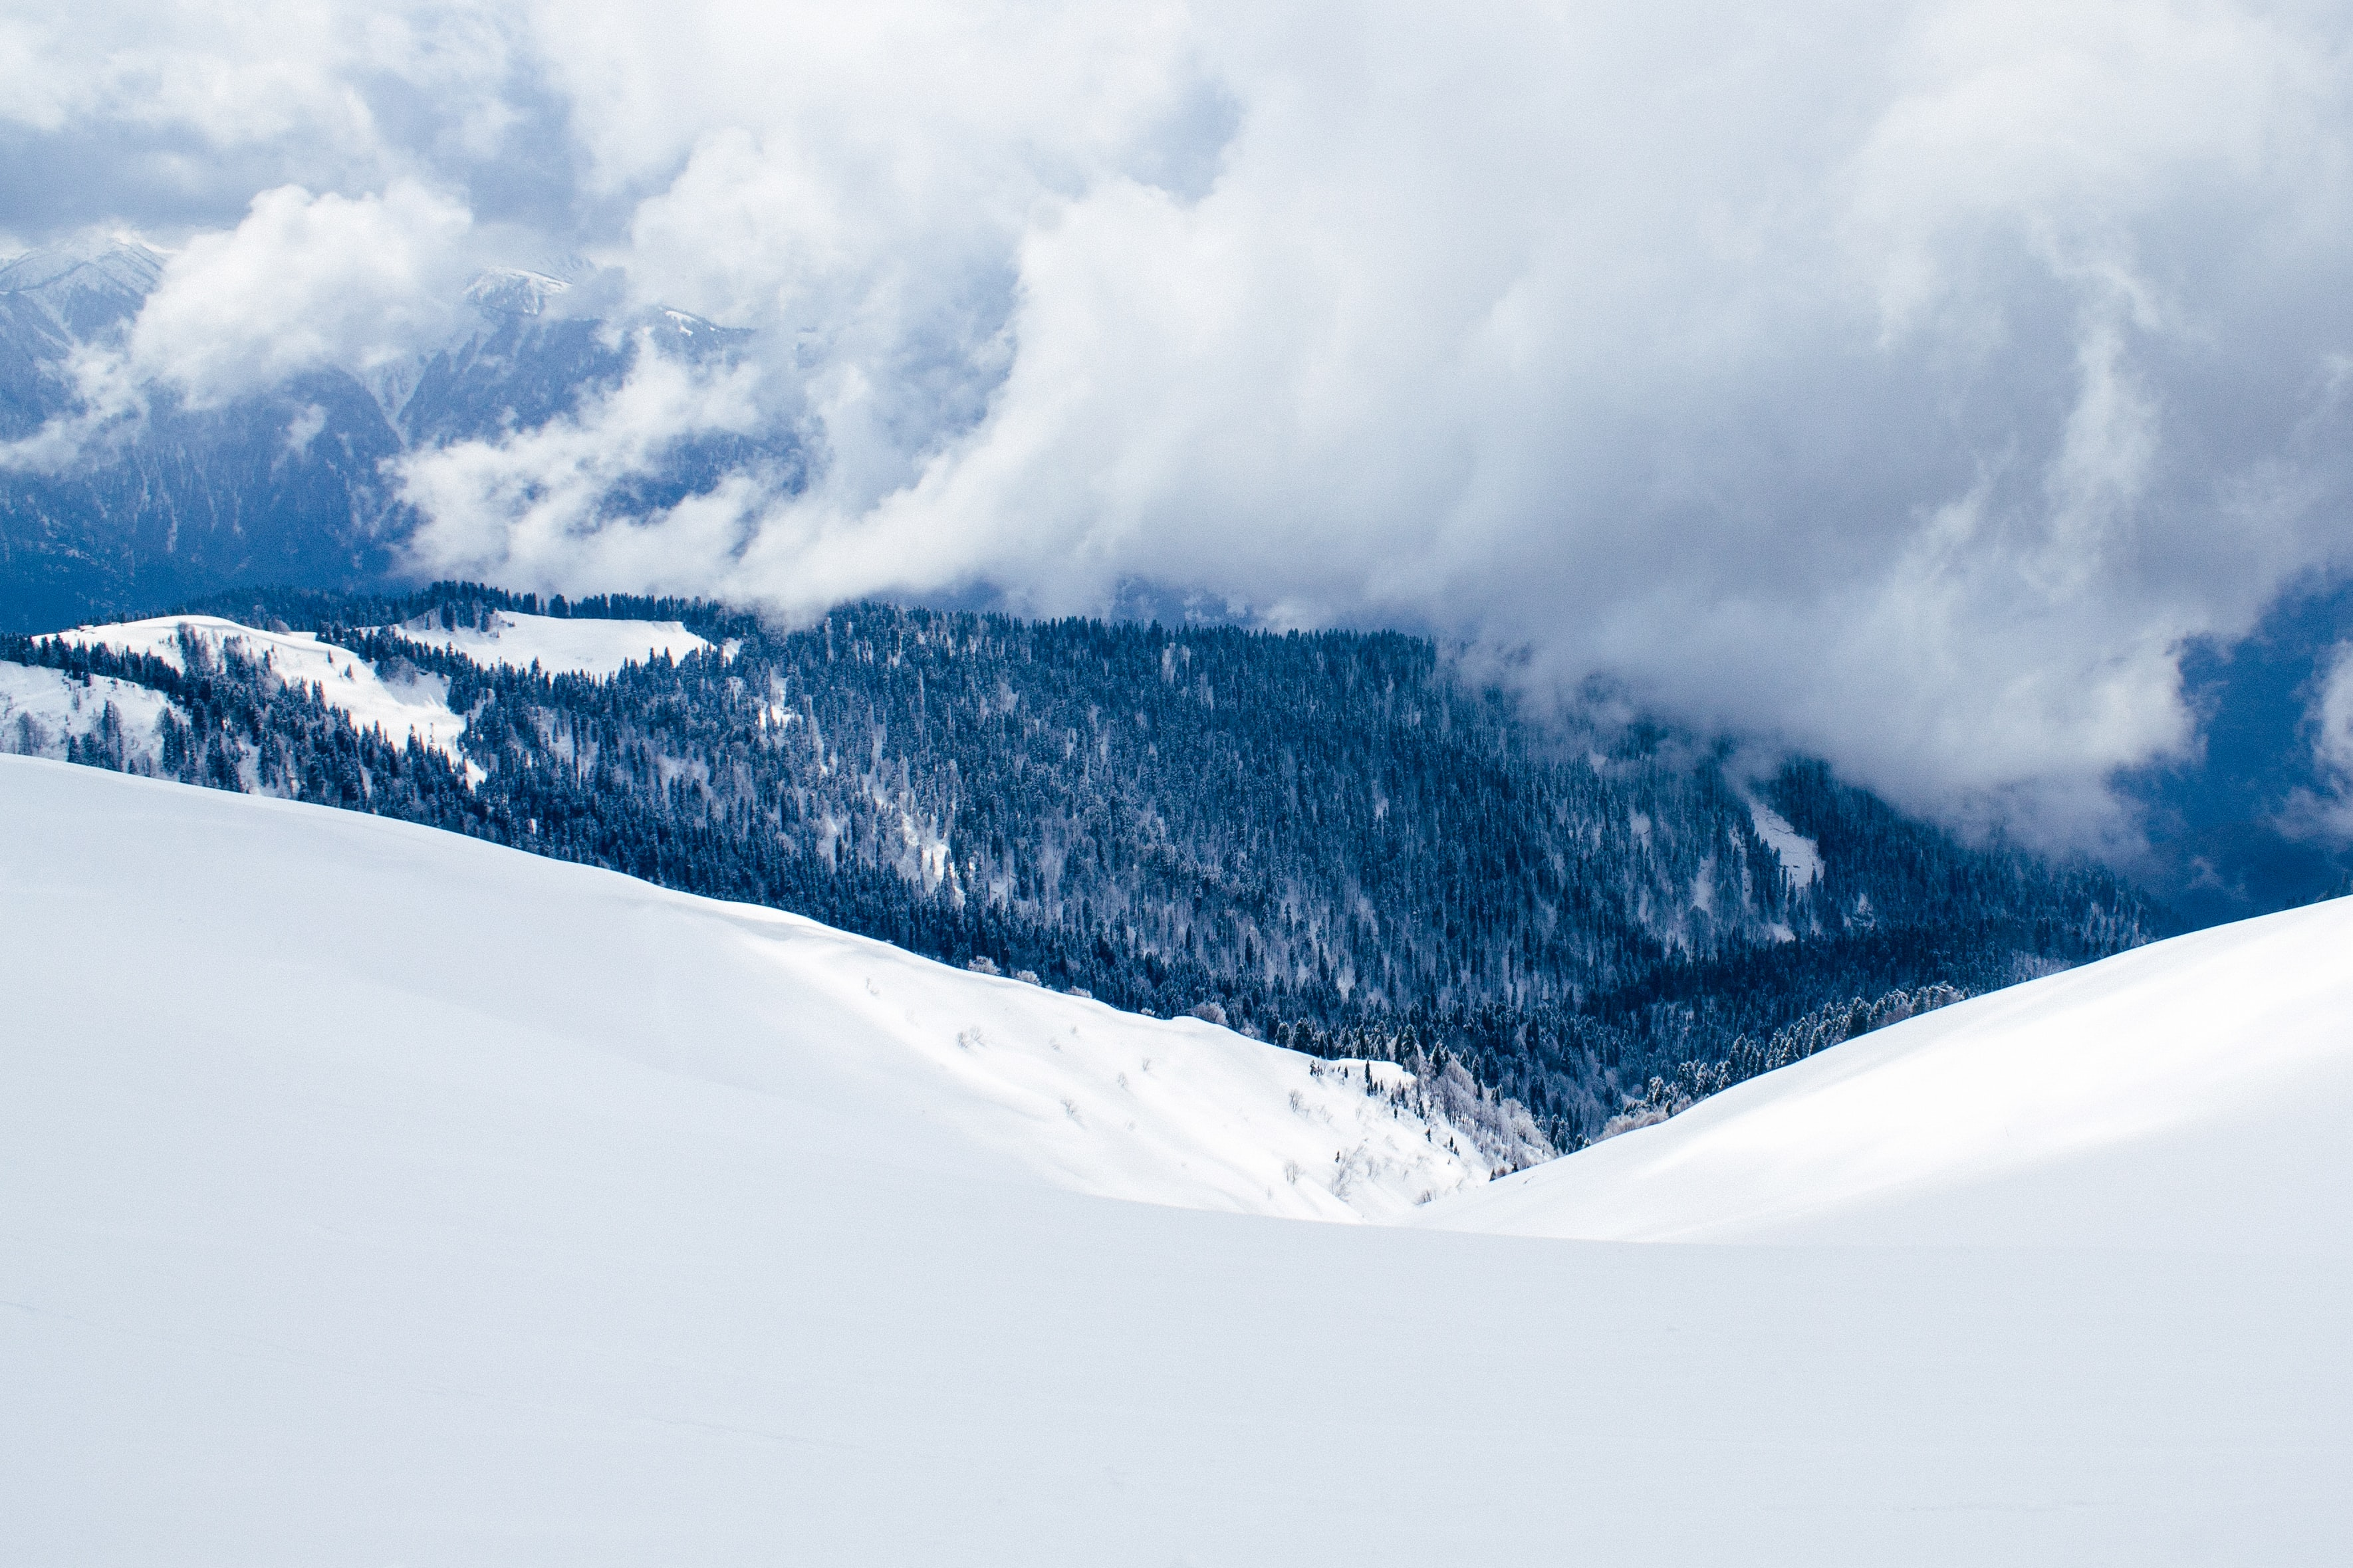 A blanket of snow changes to a forest covered mountain with thick white clouds